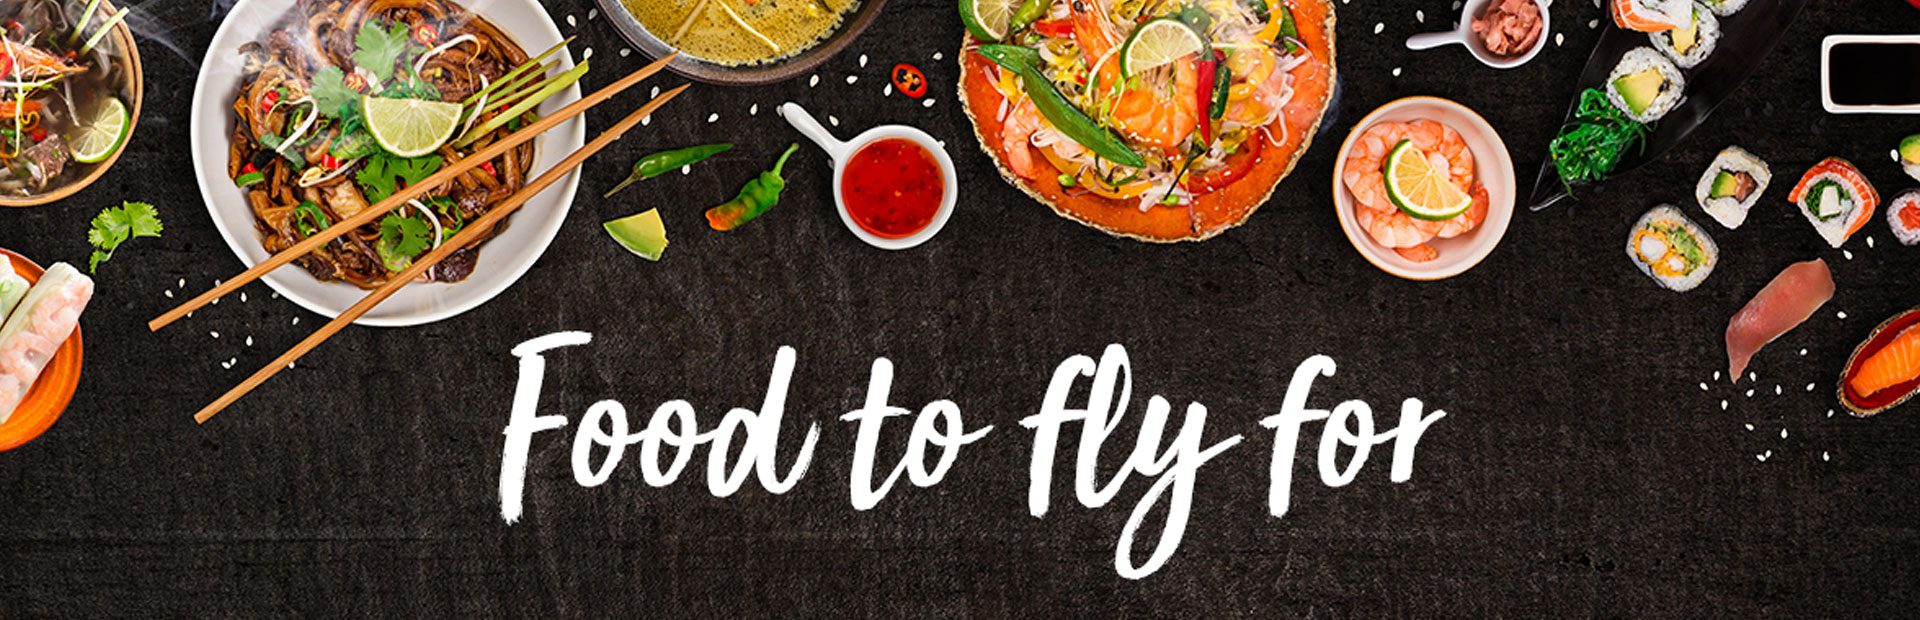 Food to Fly For